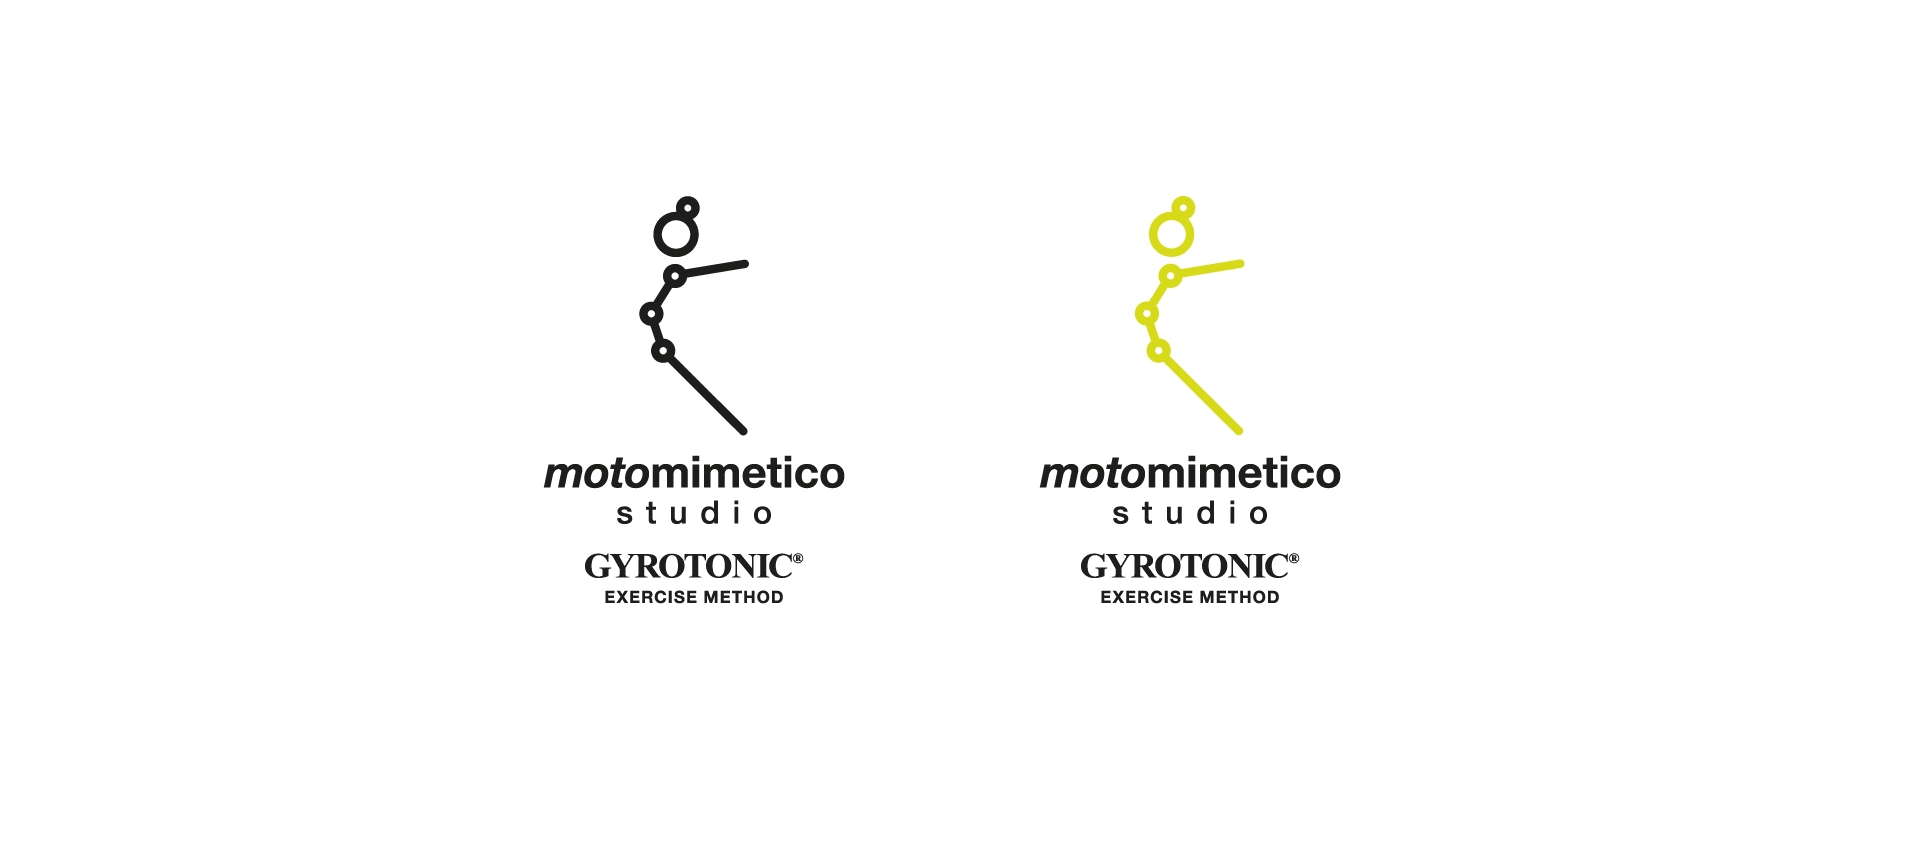 motomimetico-studio-gyrotonic-exercise-method